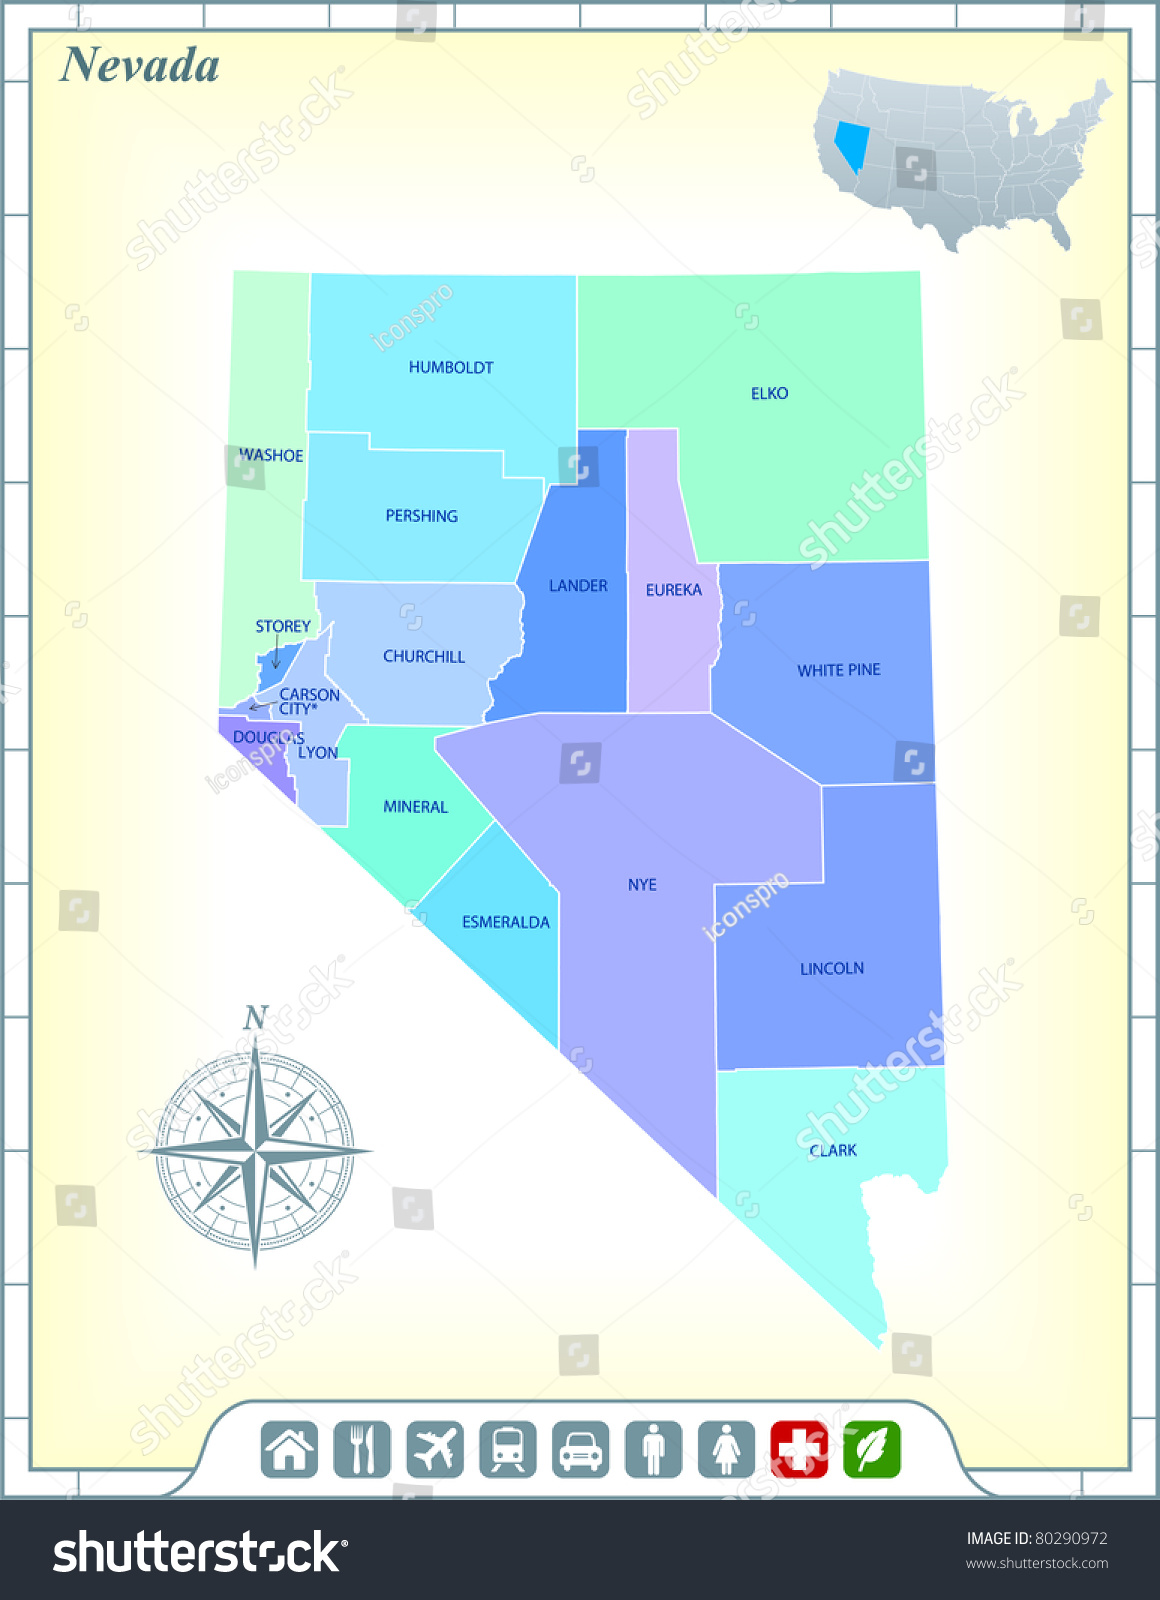 Nevada State Map Community Assistance Activates Stock Vector ...